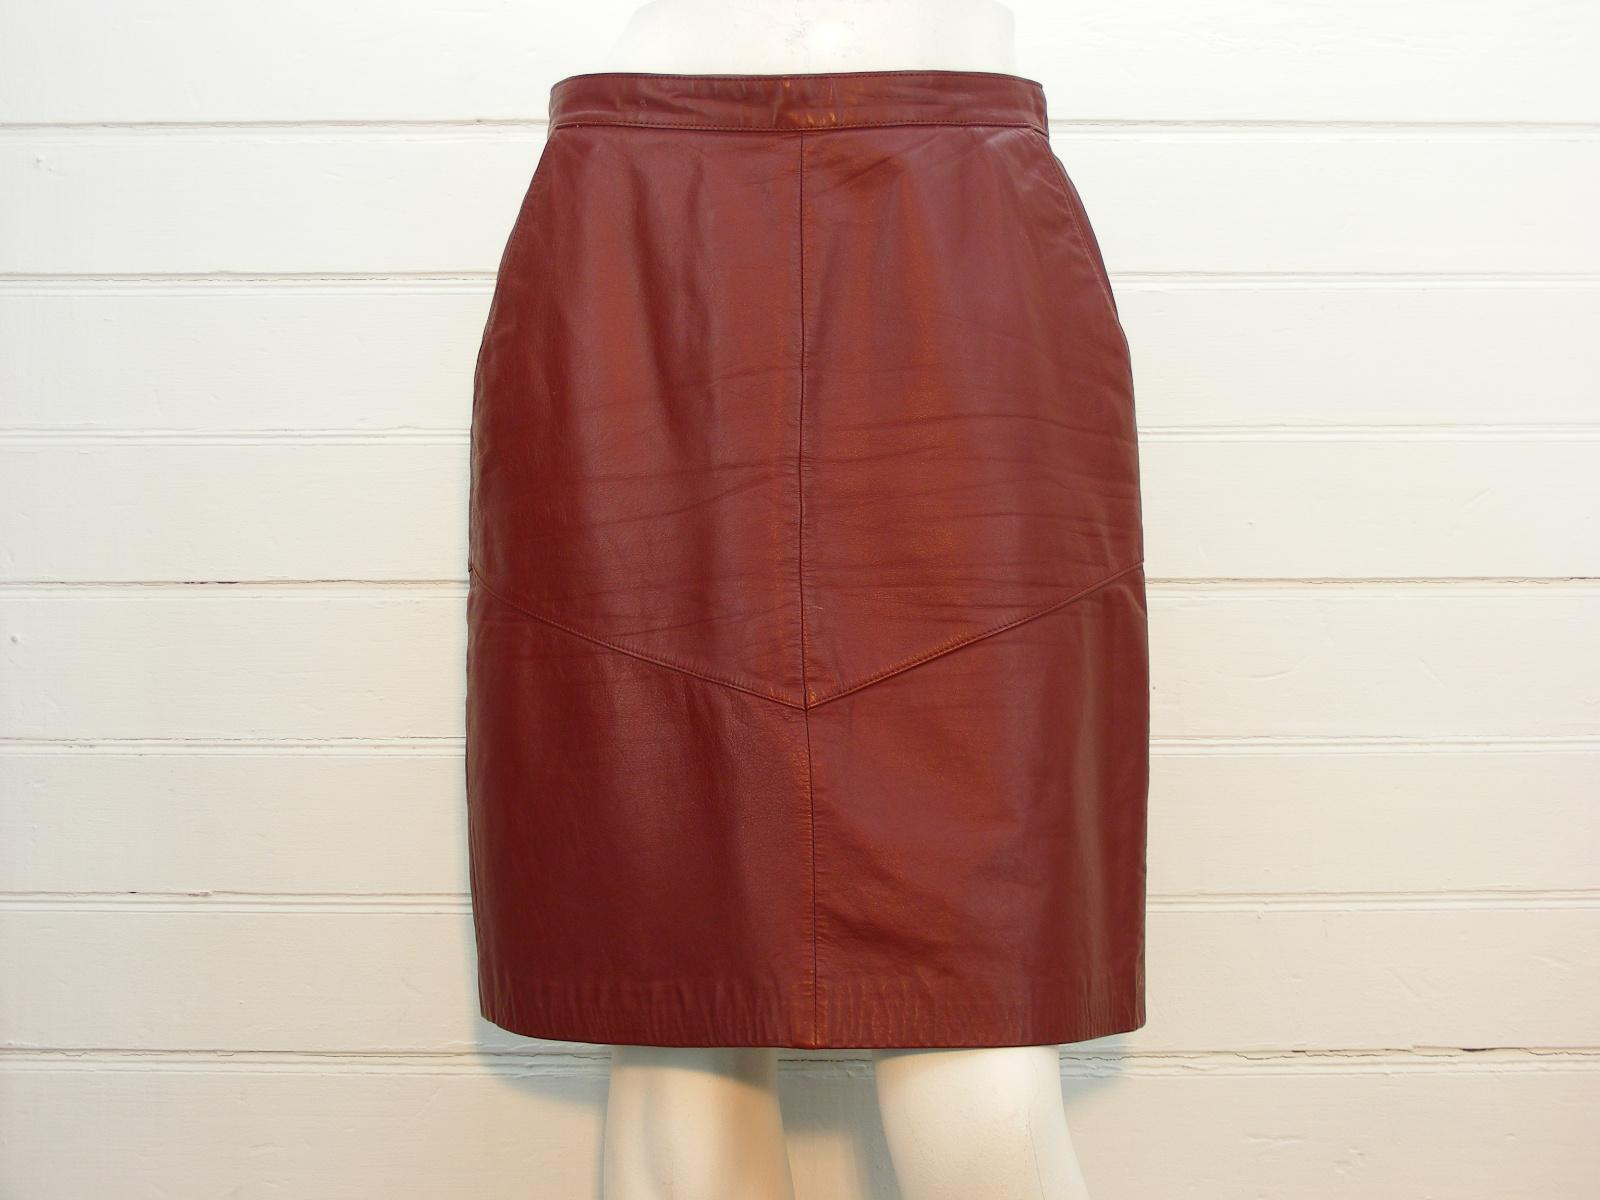 EVAN DAVIES Skirt Burgundy Real Leather LINED Below Knee, Sz 14 - W30